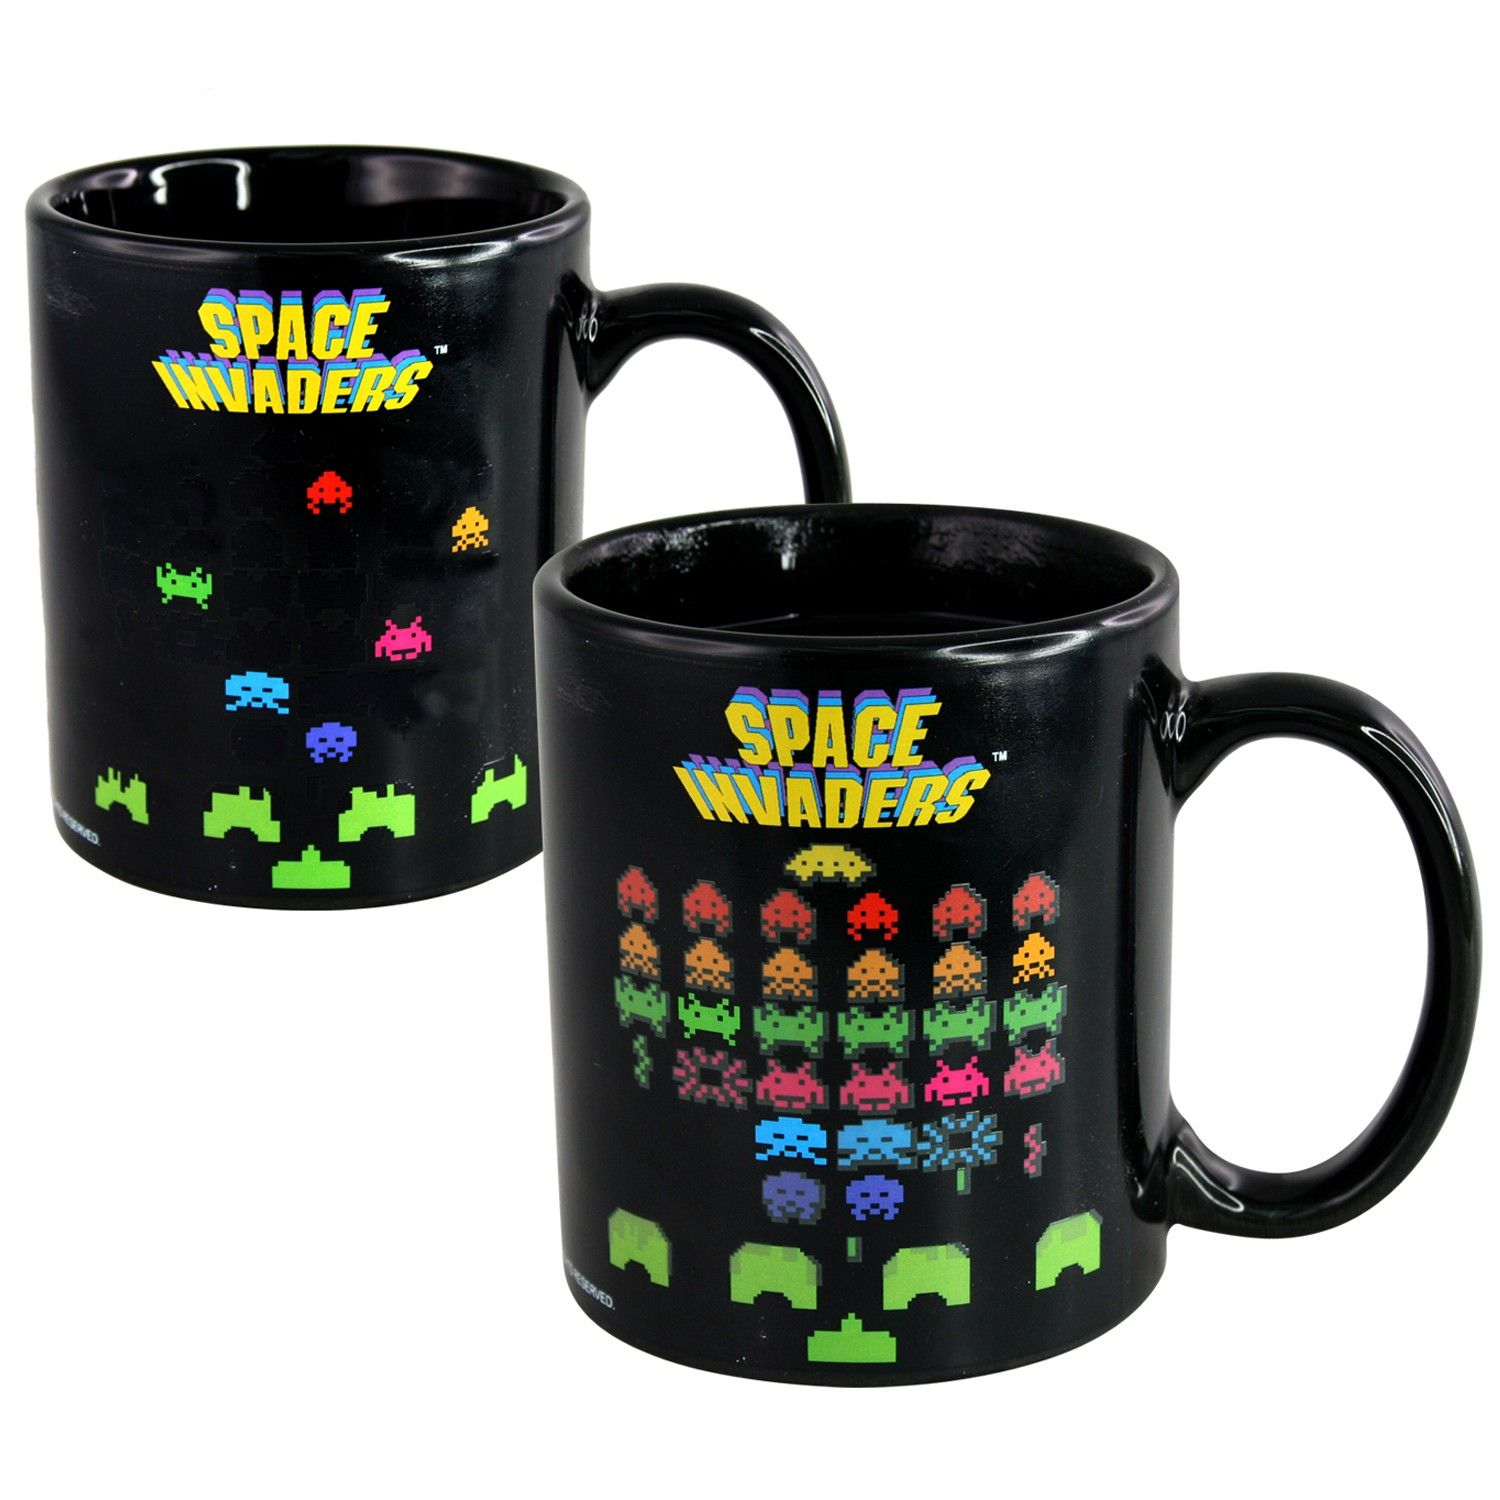 Space Invaders Colour Changing Mug Only £6!! (With